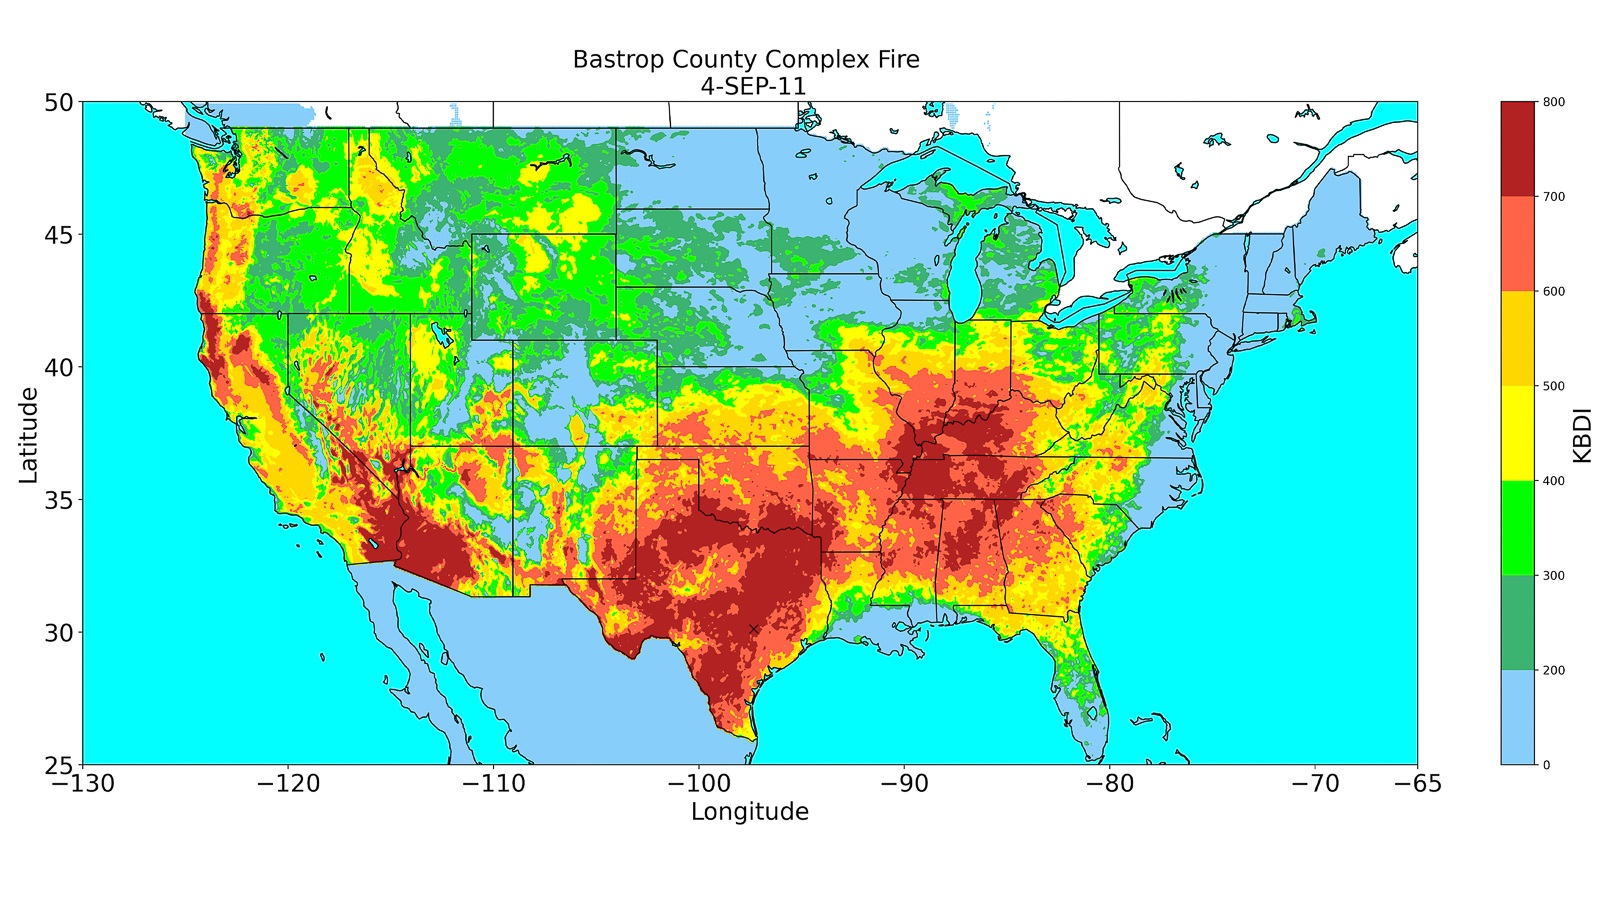 Predicted KBDI index on September 4, 2011, when the Bastrop County Complex Fire started in Texas. It was the most destructive wildfire in Texas history. (Image by Emily K. Brown, Argonne National Laboratory. [She made it while she was here as a student. She is no longer at Argonne.])